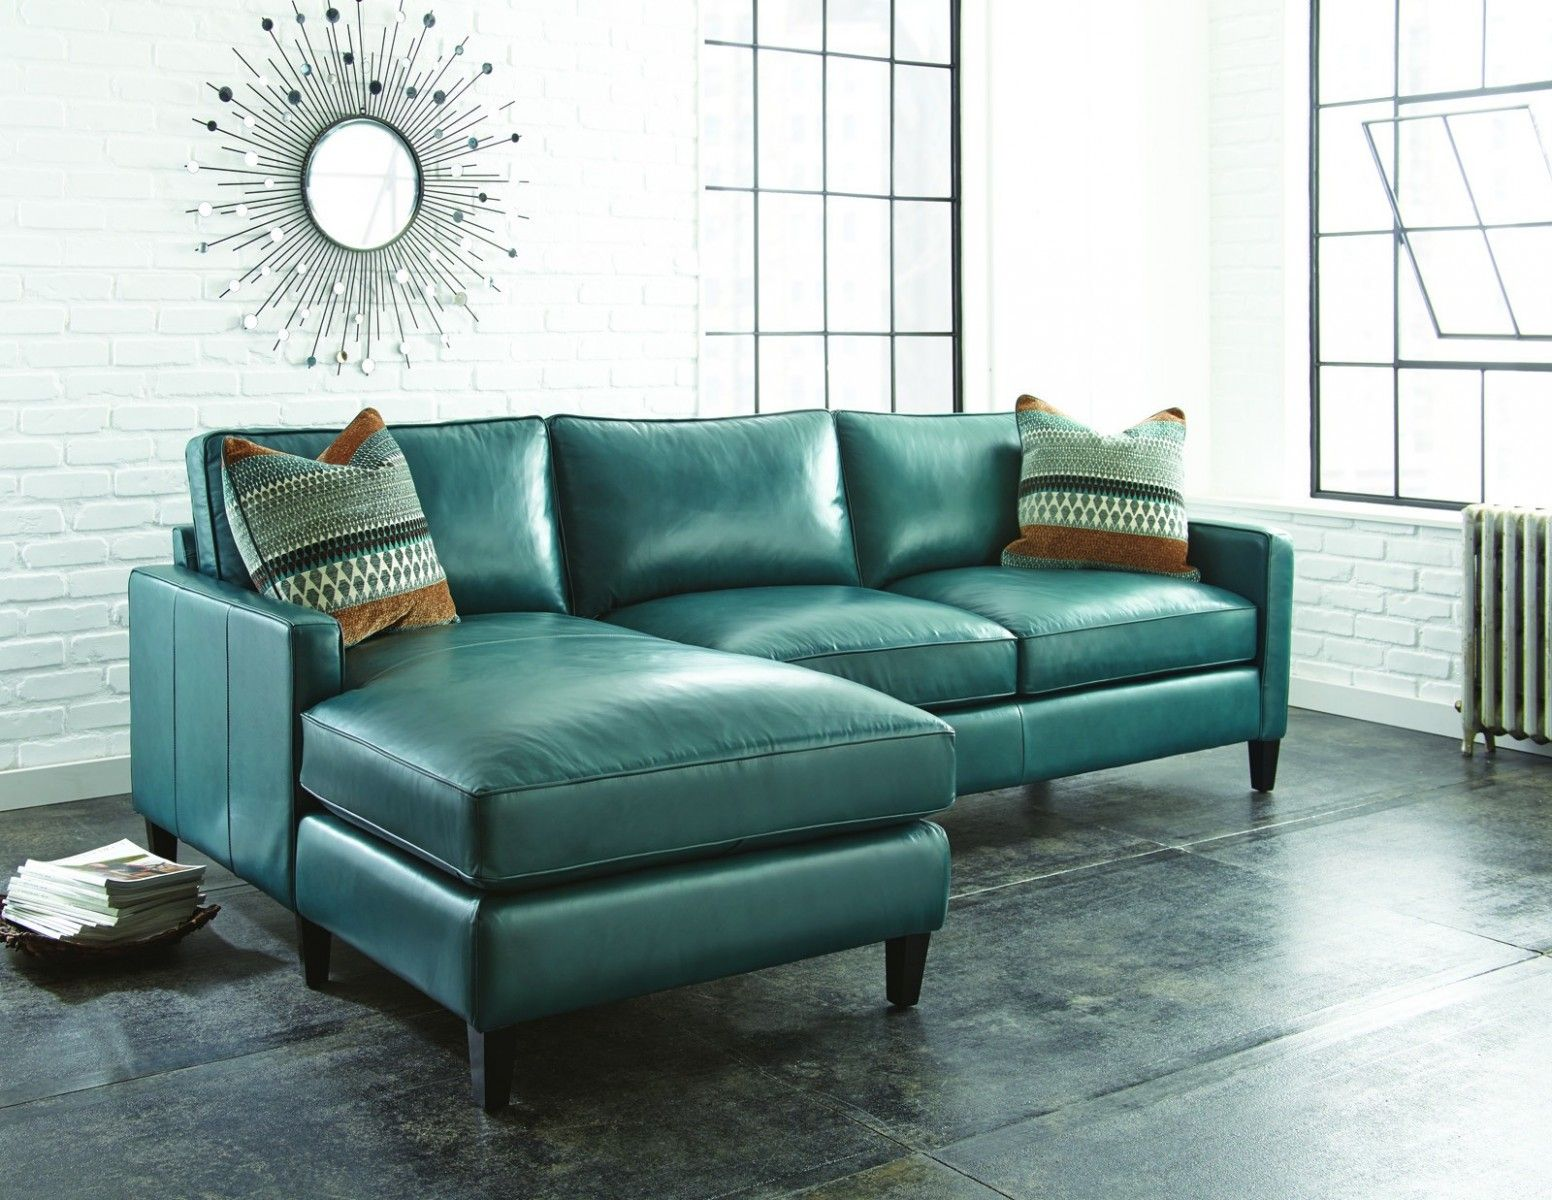 Excellent Aqua Green Leather Sofa The Versatility And Allure Of Gmtry Best Dining Table And Chair Ideas Images Gmtryco